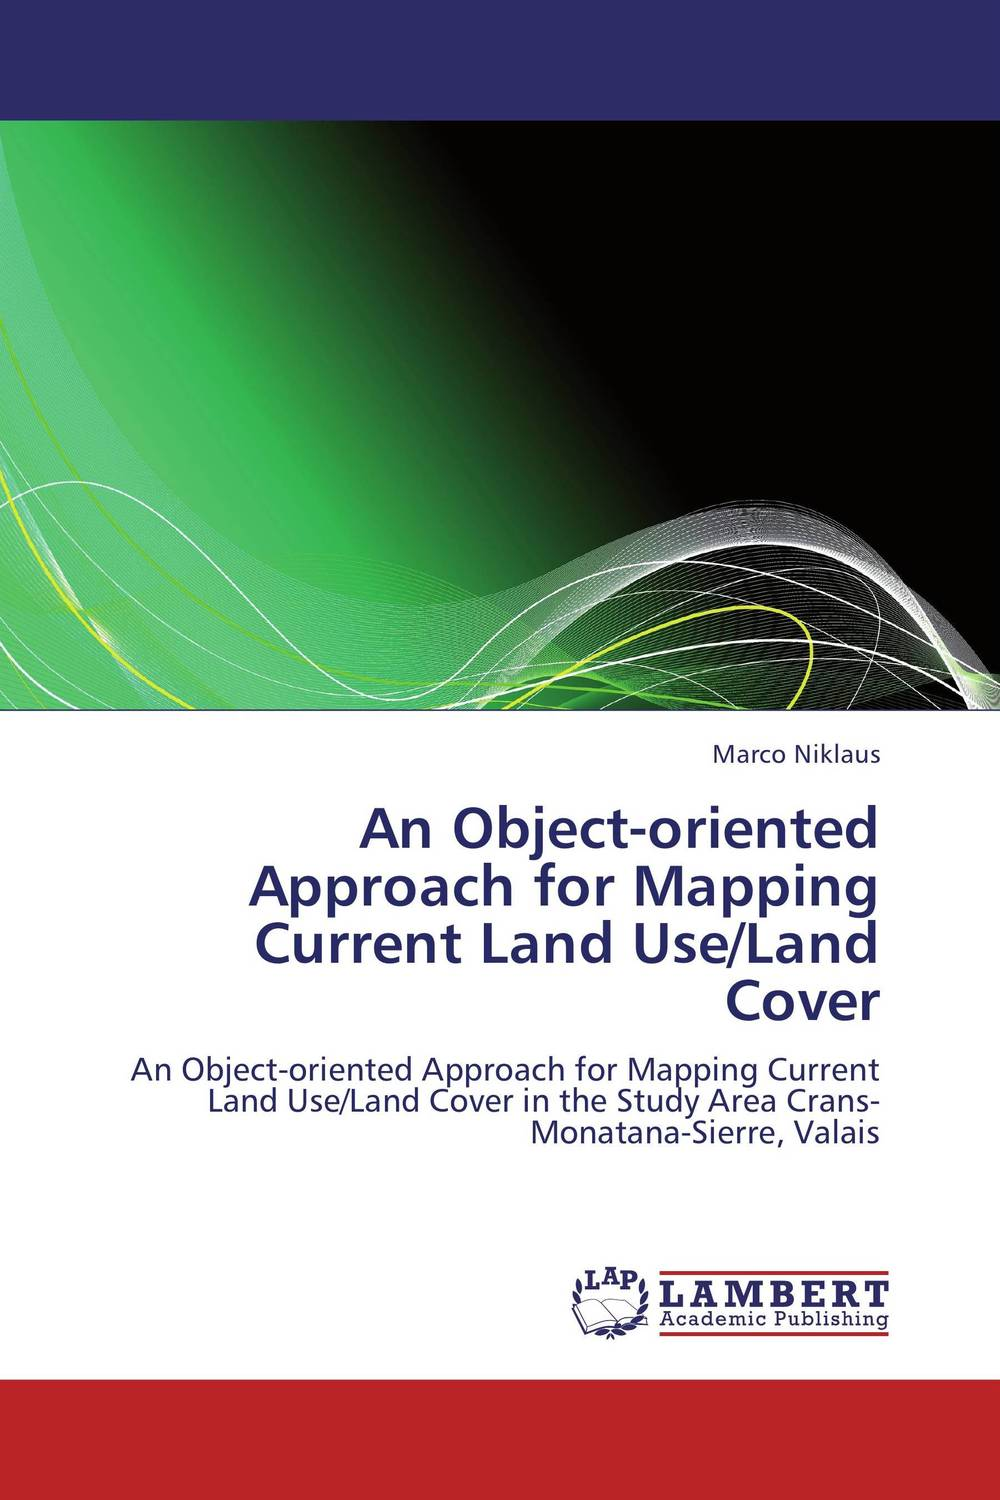 An Object-oriented Approach for Mapping Current Land Use/Land Cover